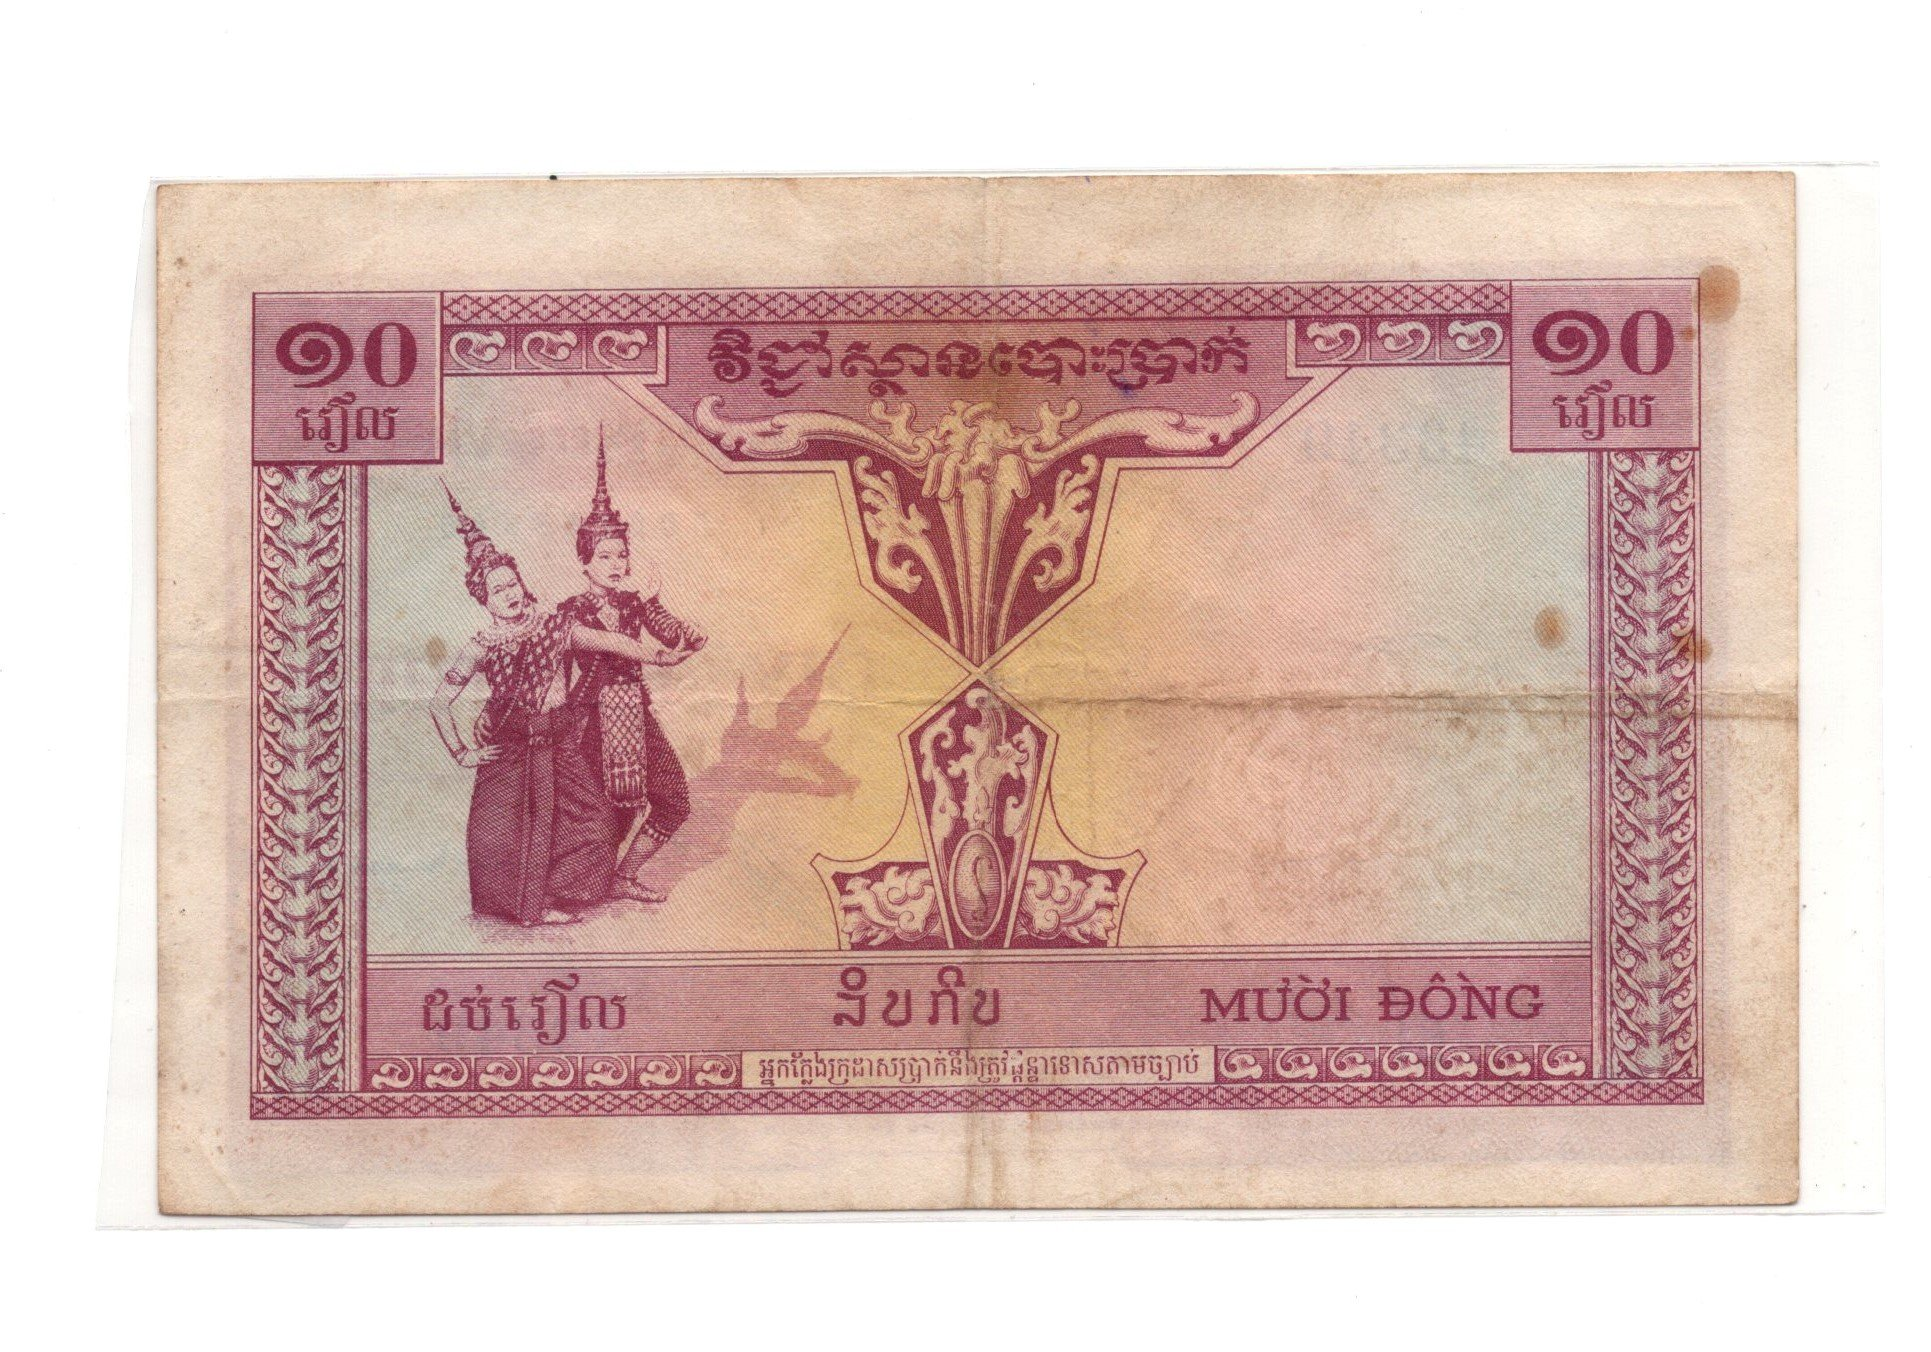 French indochina 10 piastres cambodia issue for sale